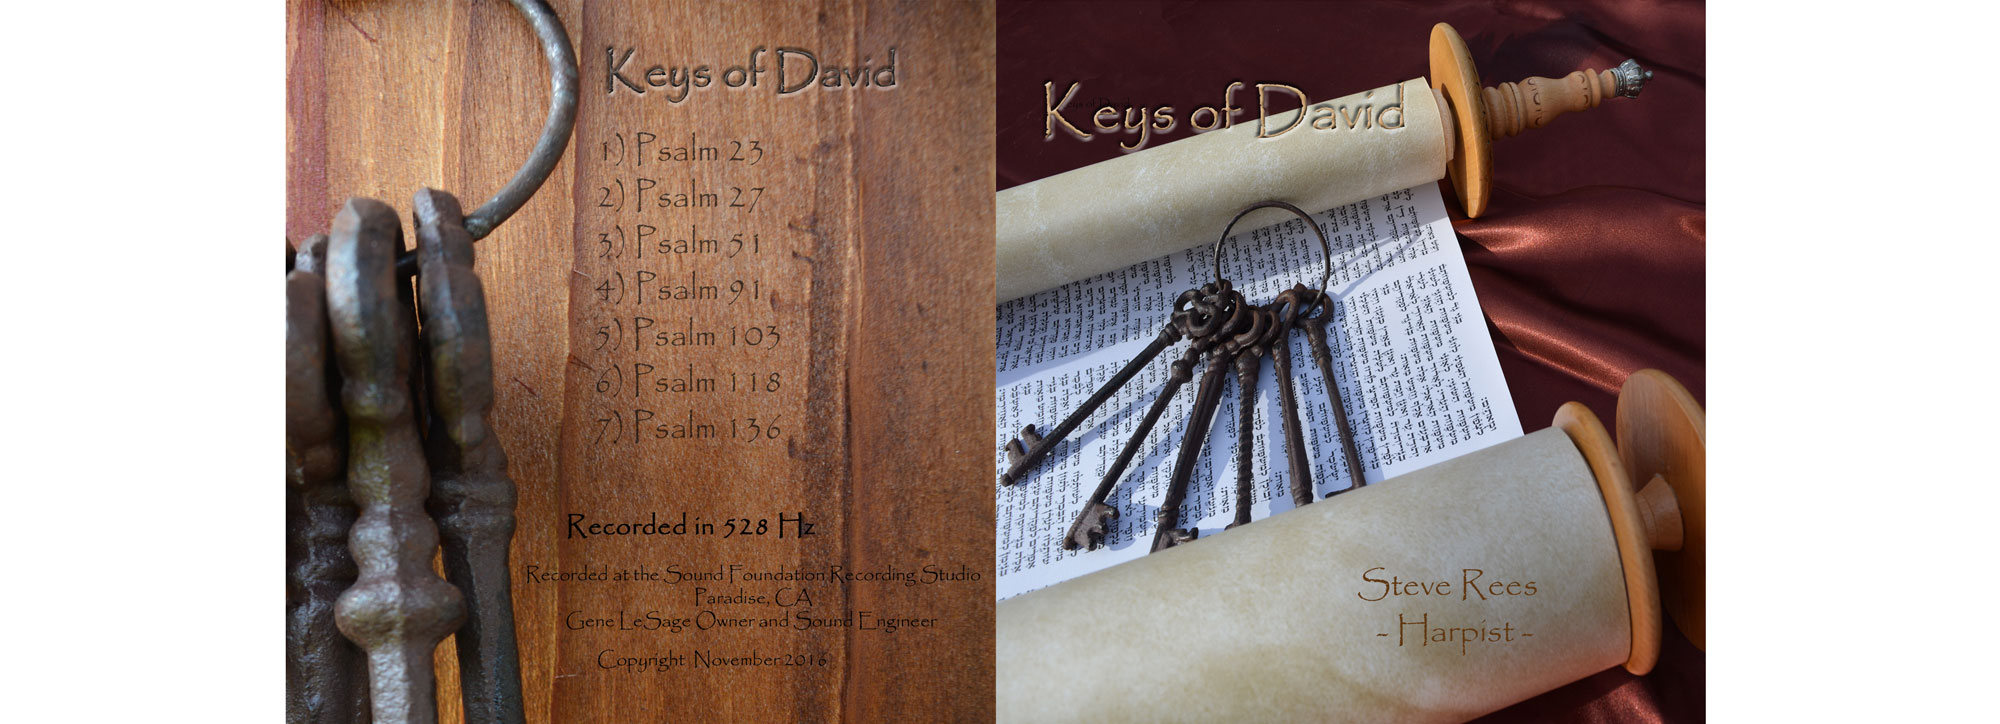 Keys of David by Steve Rees